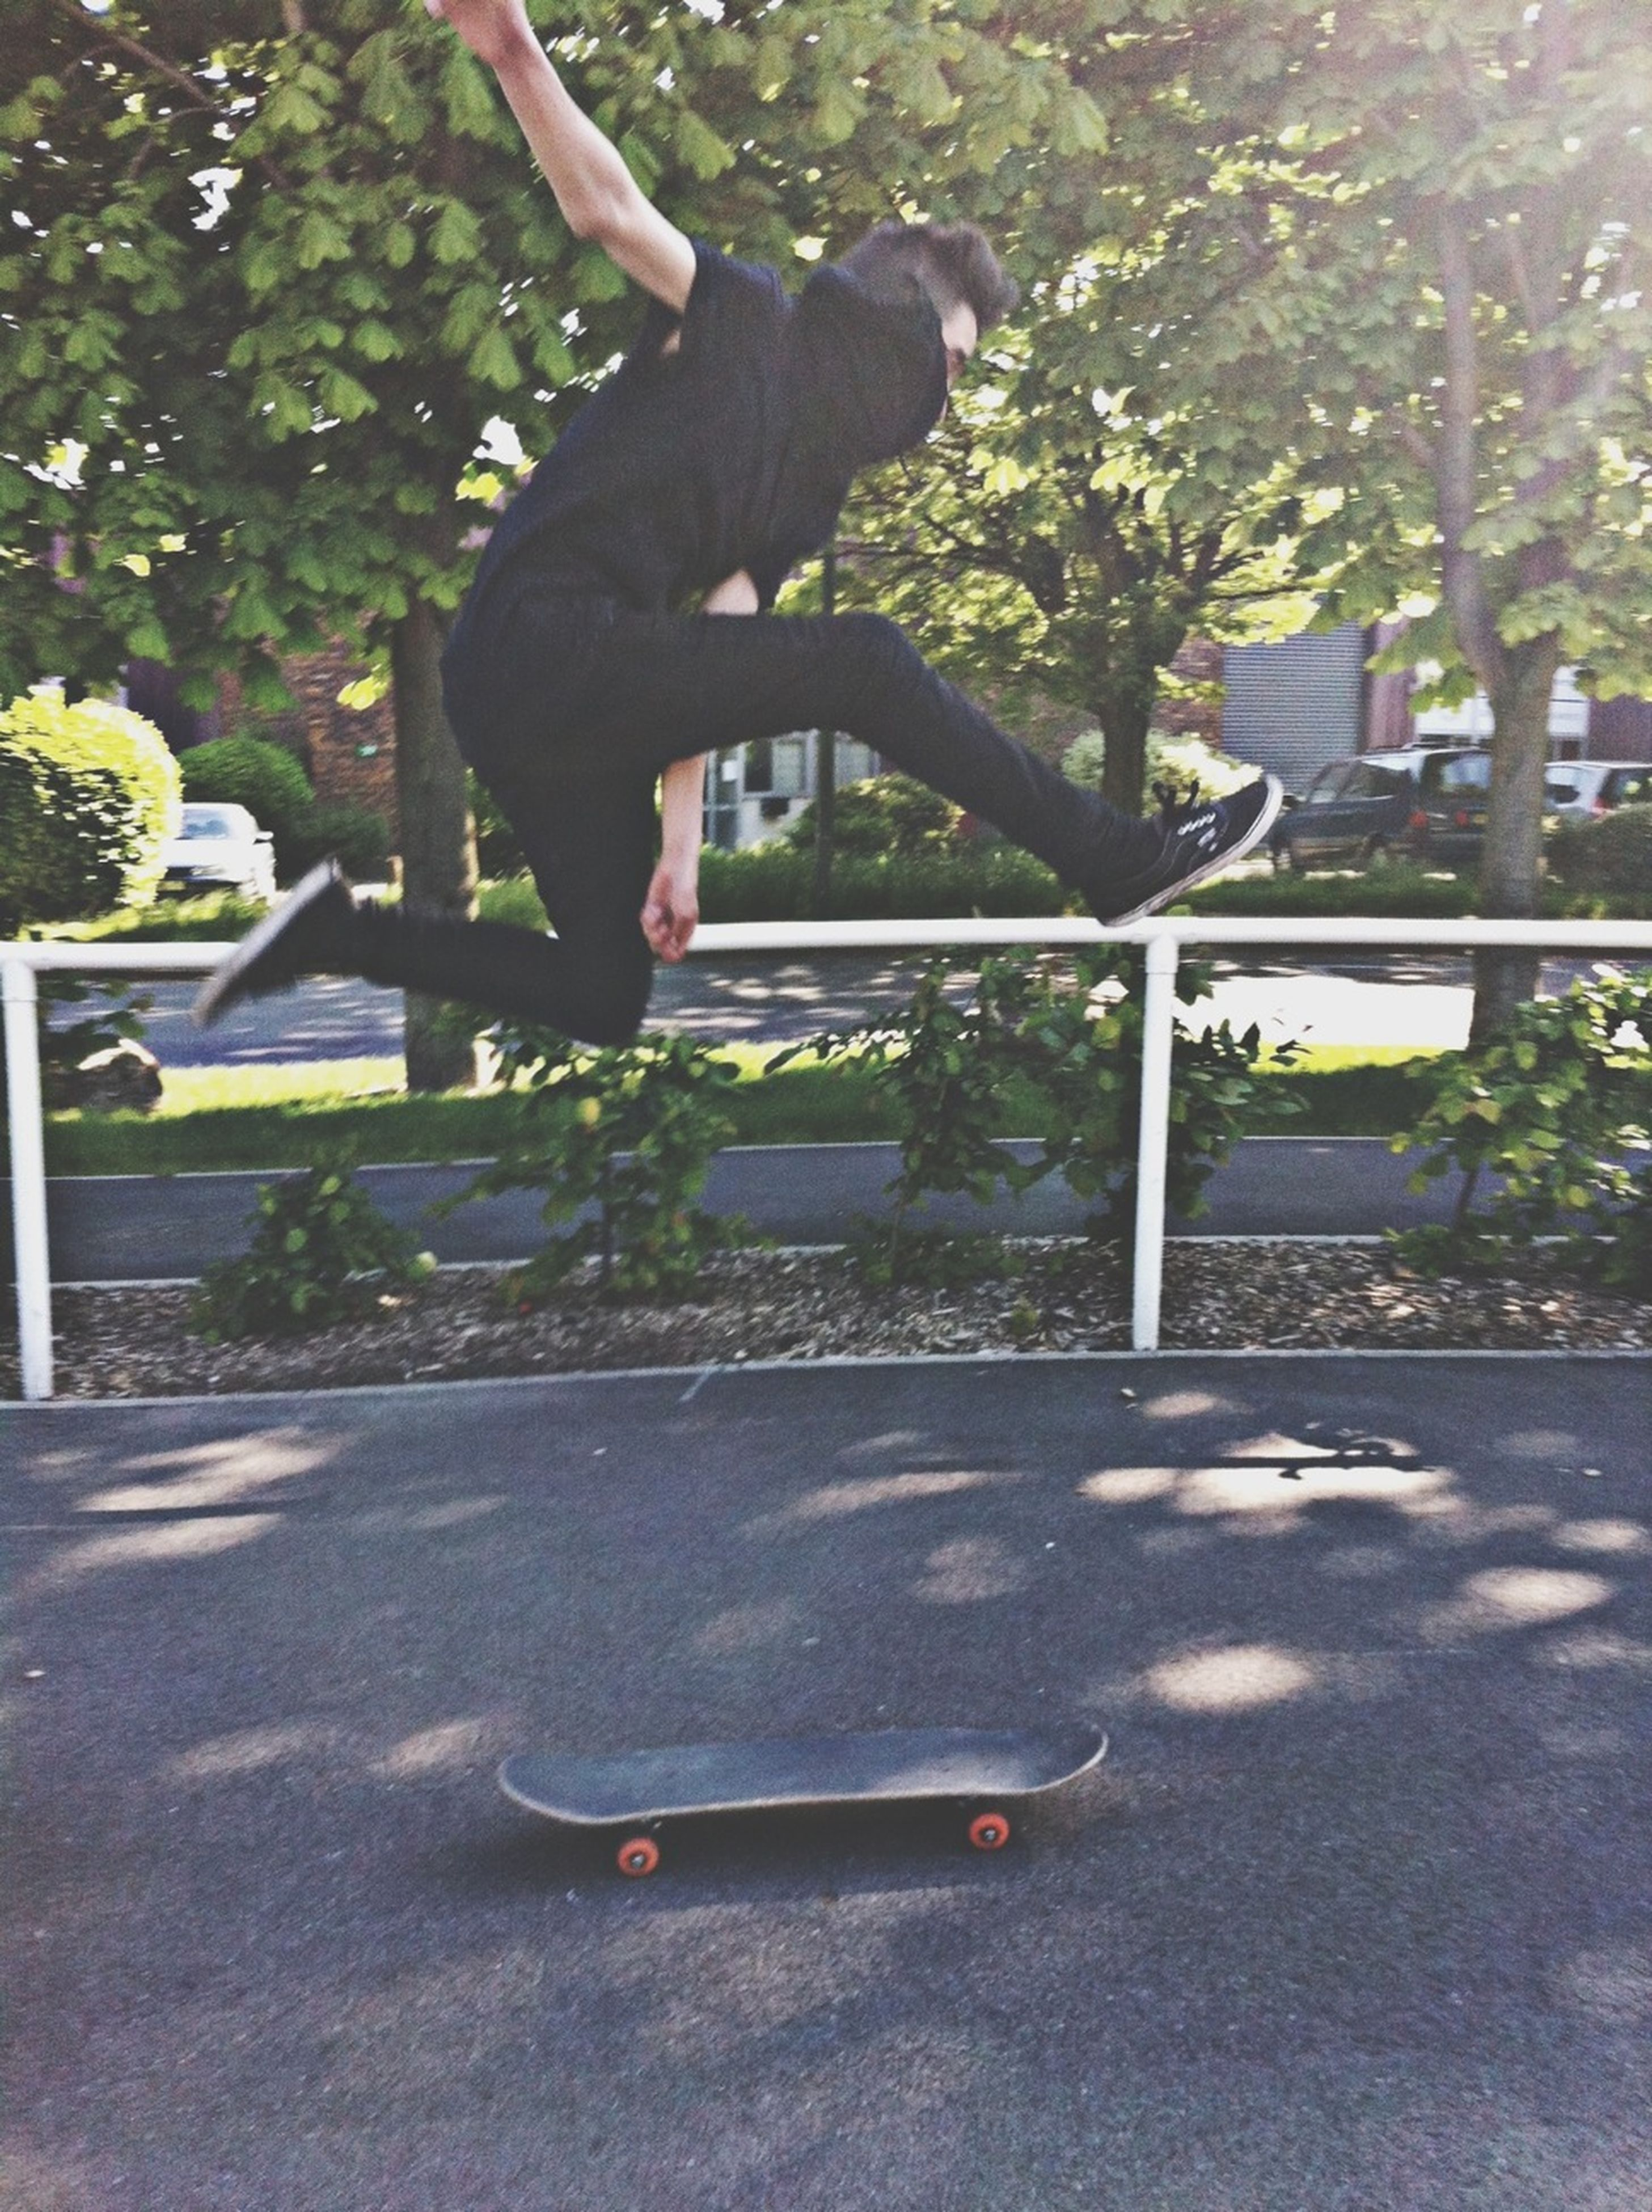 tree, lifestyles, full length, leisure activity, mid-air, jumping, street, low section, sport, men, skateboard, skill, road, sunlight, park - man made space, skateboarding, motion, outdoors